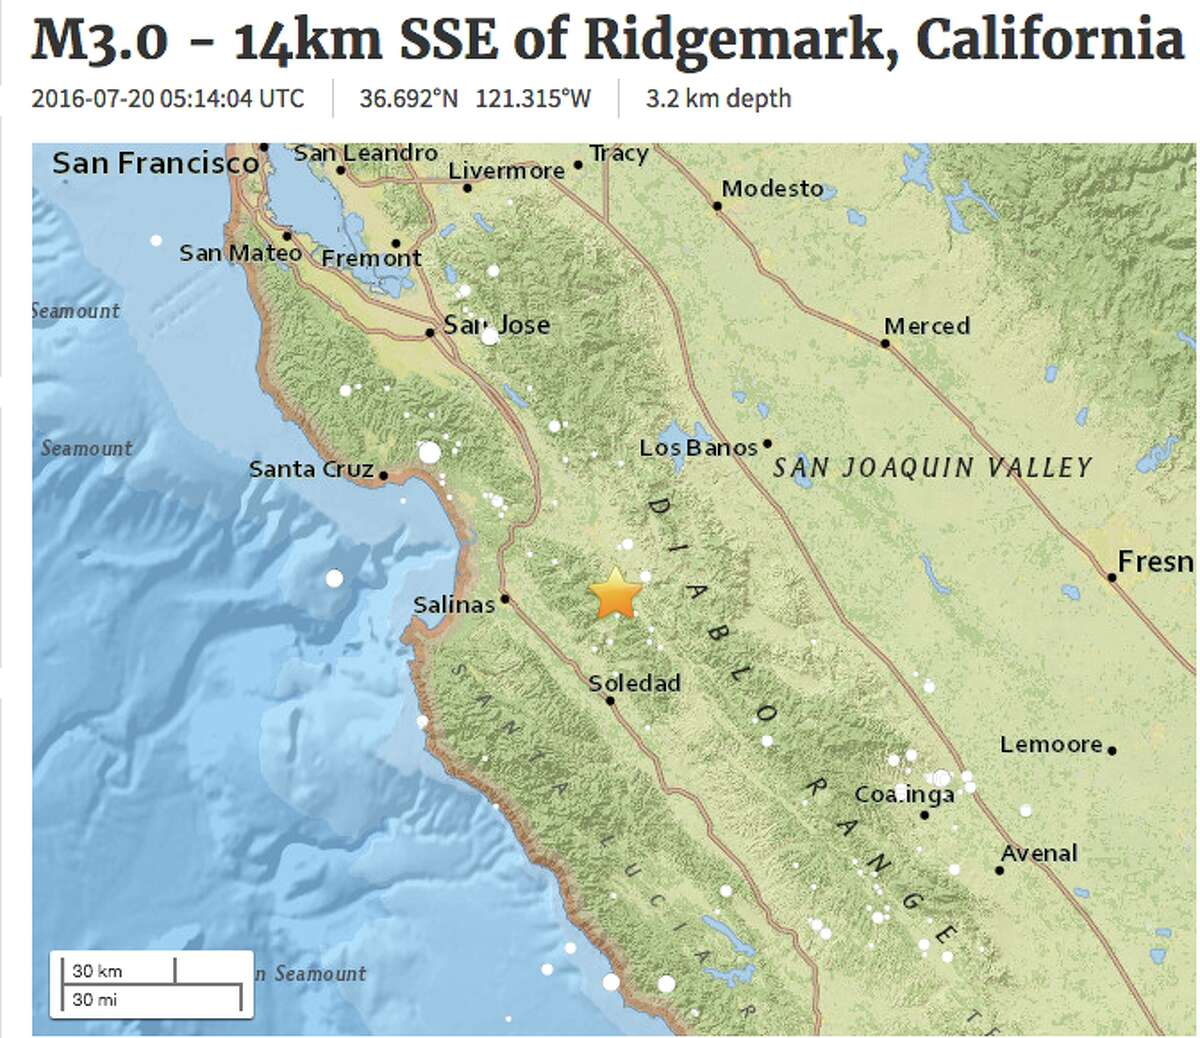 An earthquake swarm continues in the South Bay area near Hollister.